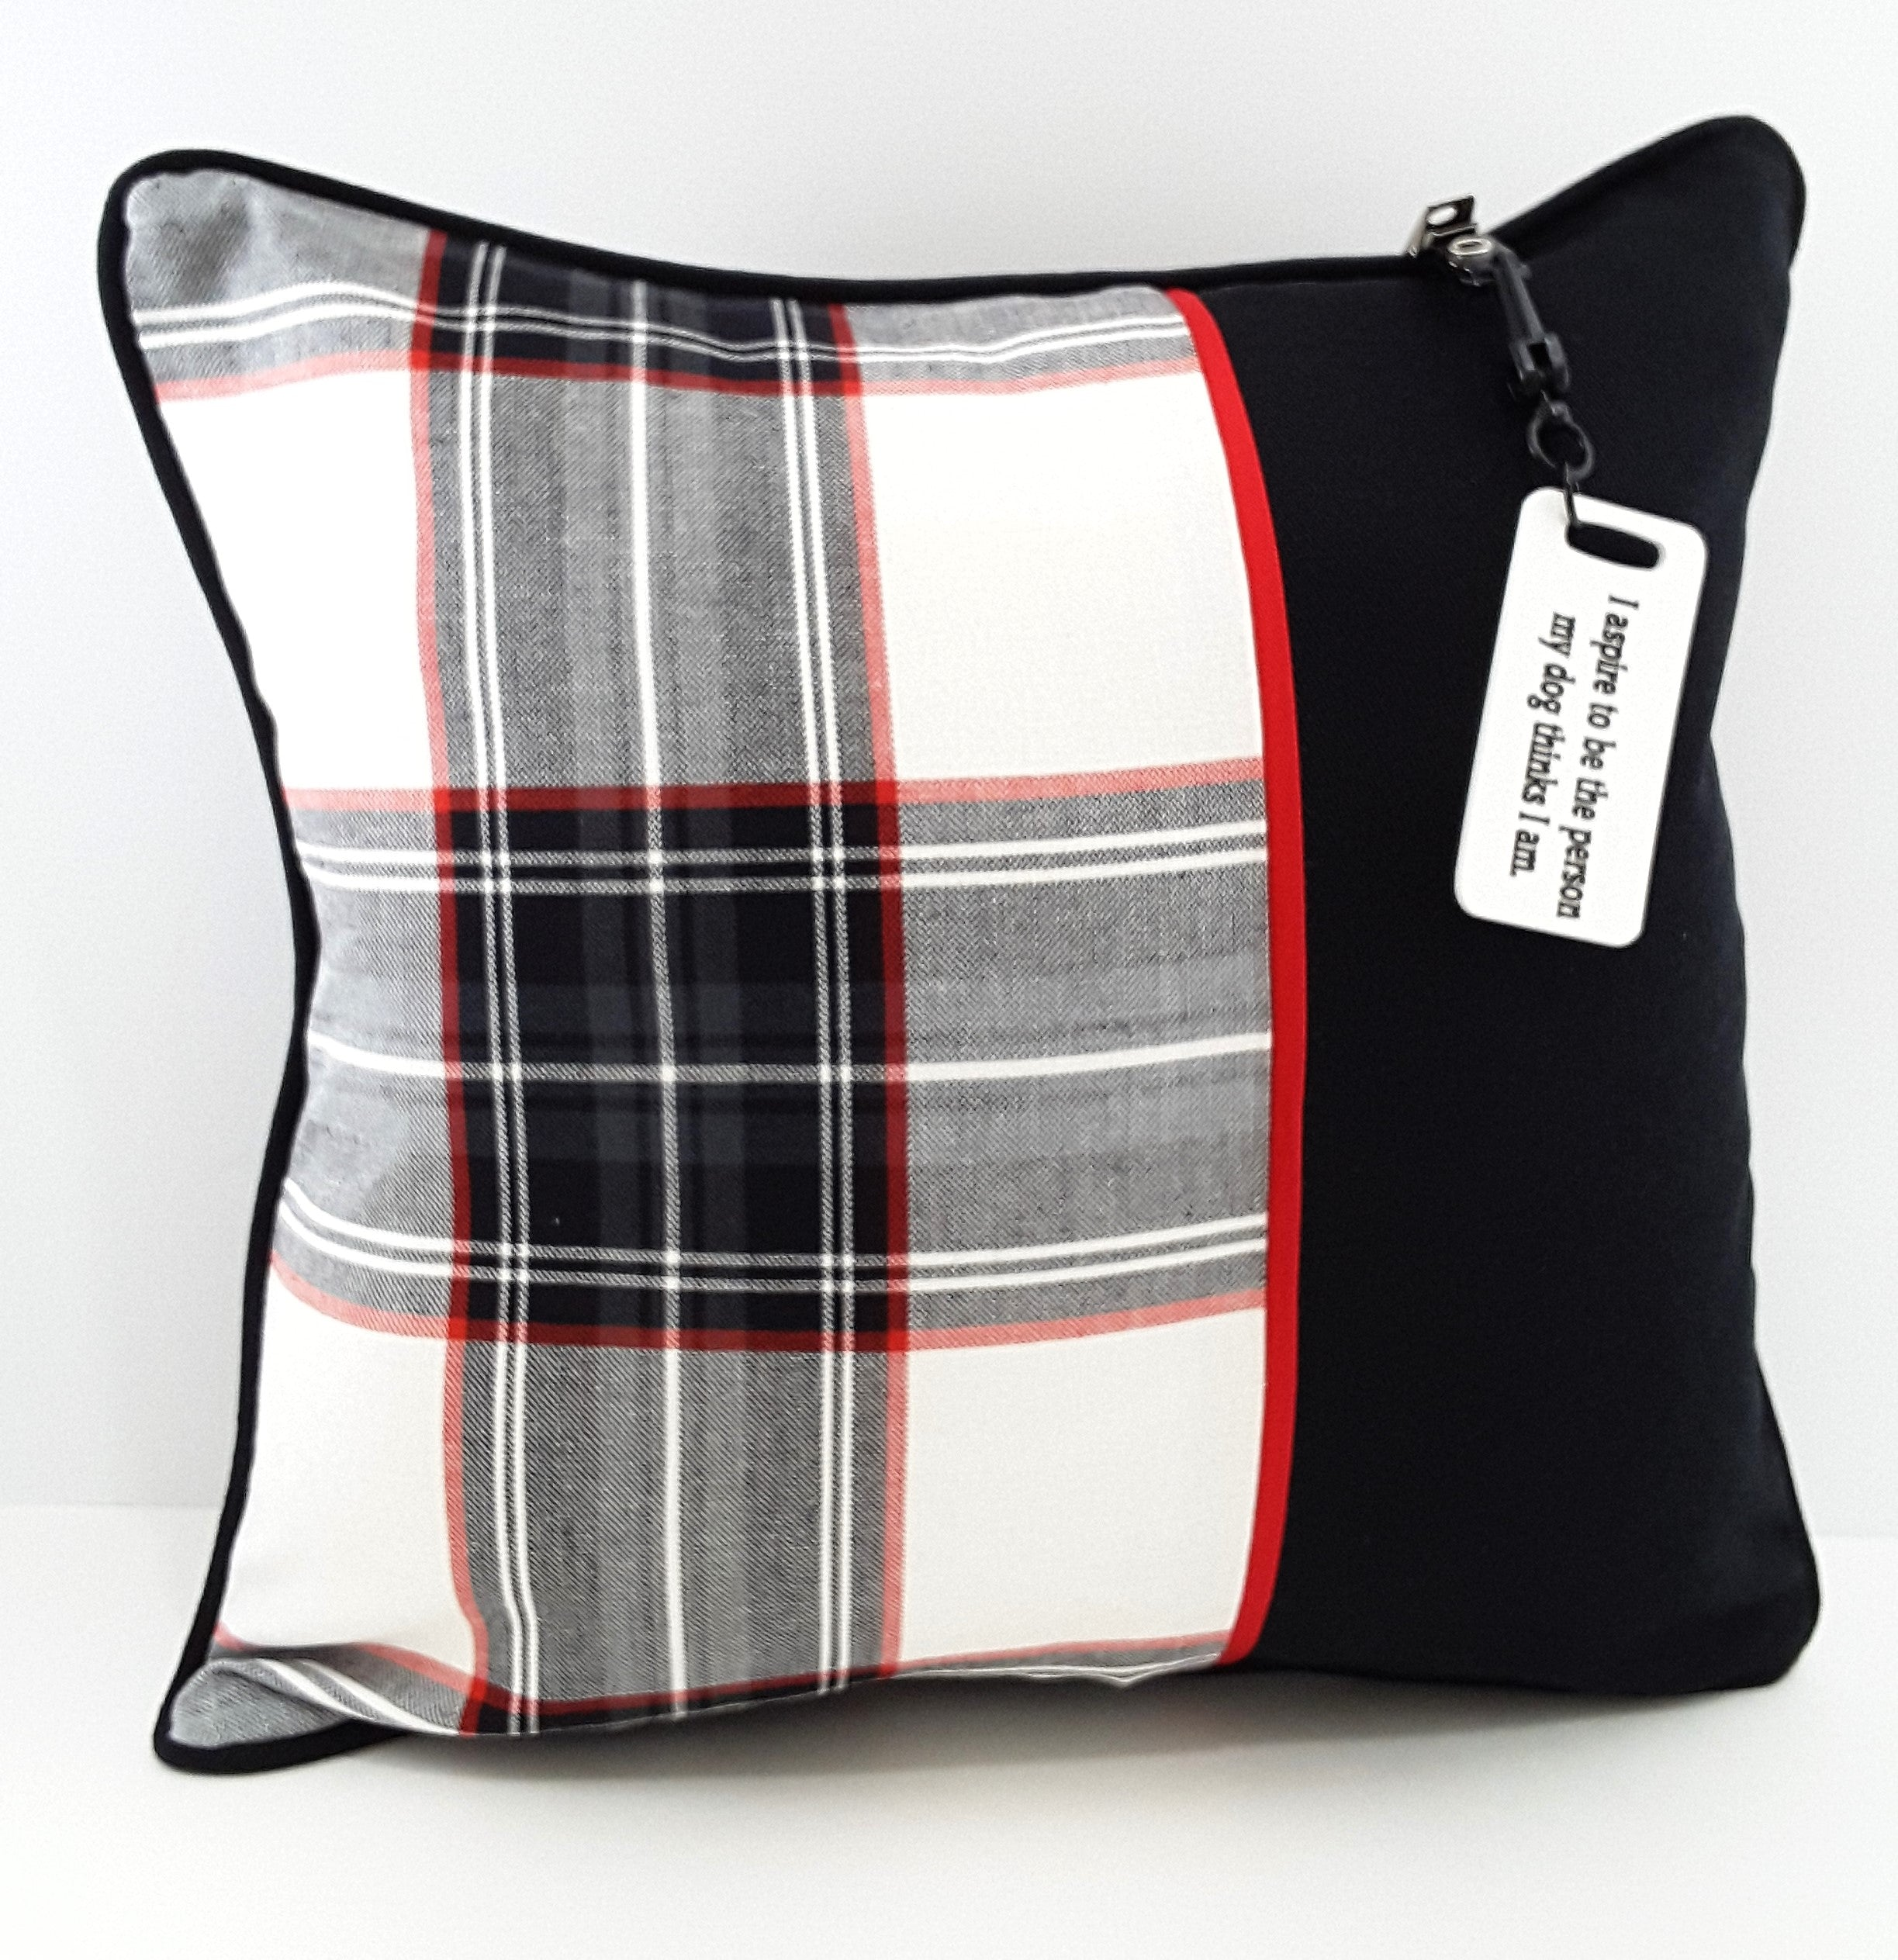 WHITE PRINTED PILLOW TAG ON PLAID PILLOW